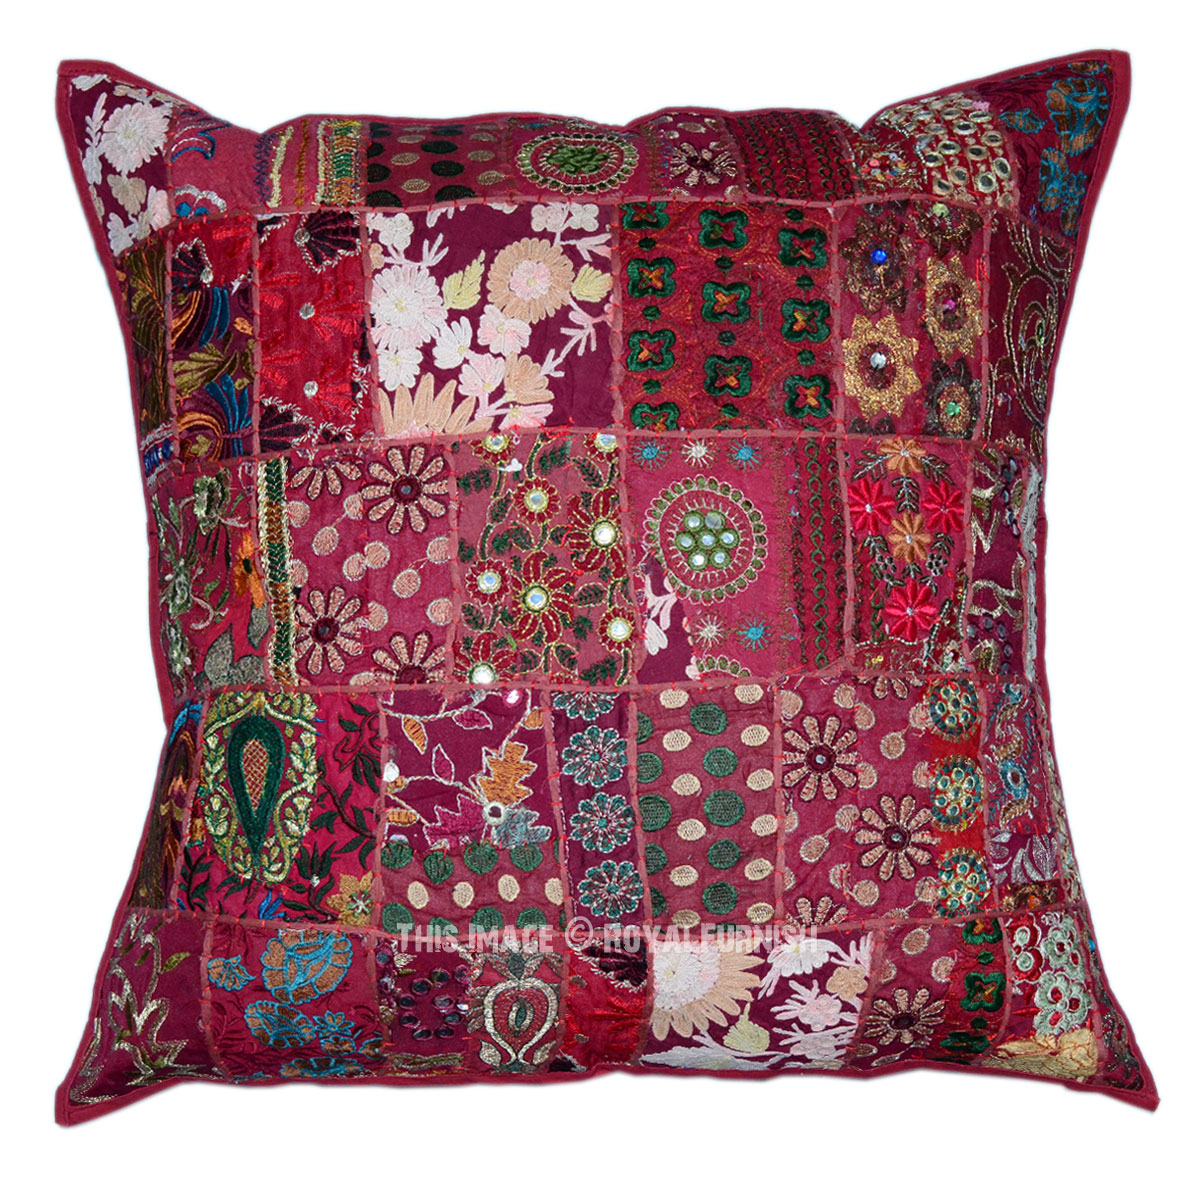 Oversized Decorative Pillow Covers : Red Oversized Vintage Bohemian Patchwork Square Indian Pillow Cushion Cover - RoyalFurnish.com